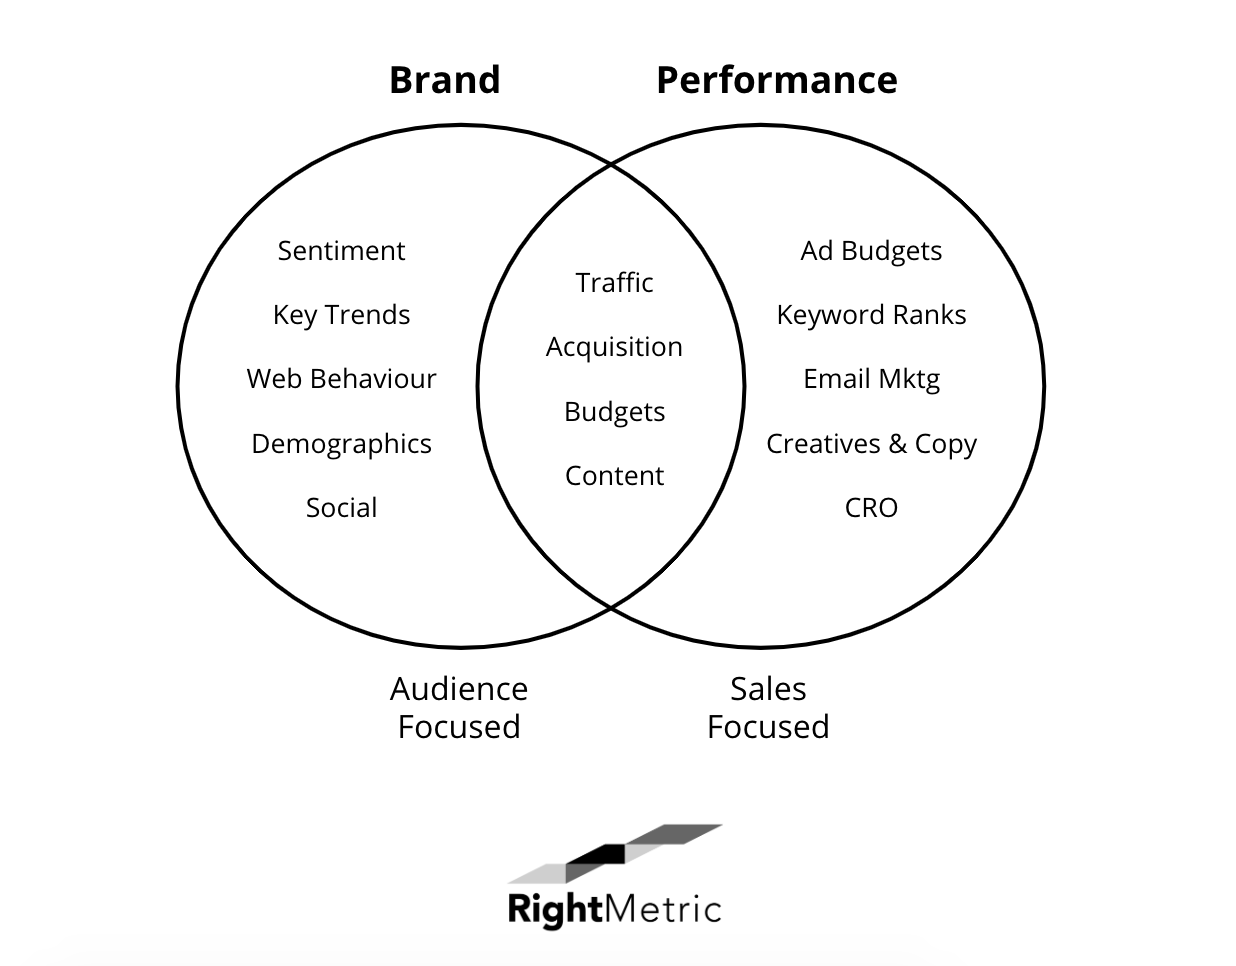 brand and performance marketing venn diagram